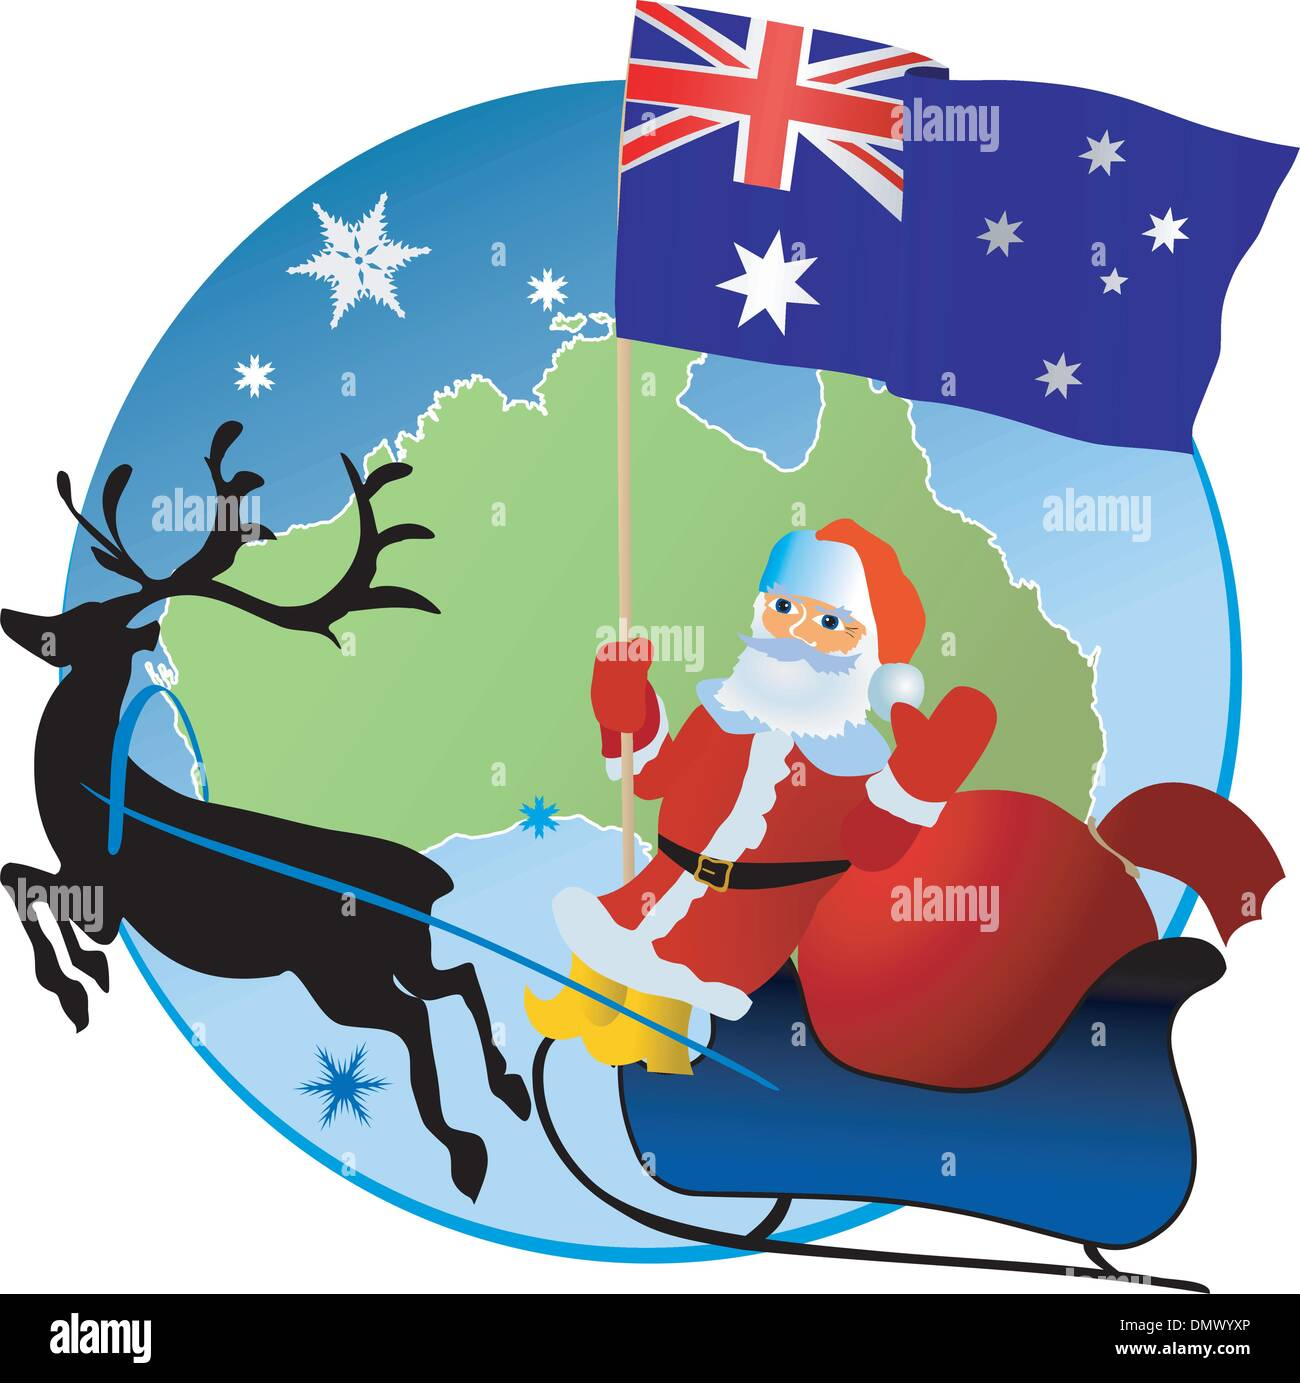 Merry Christmas Australia Stock Vector Art